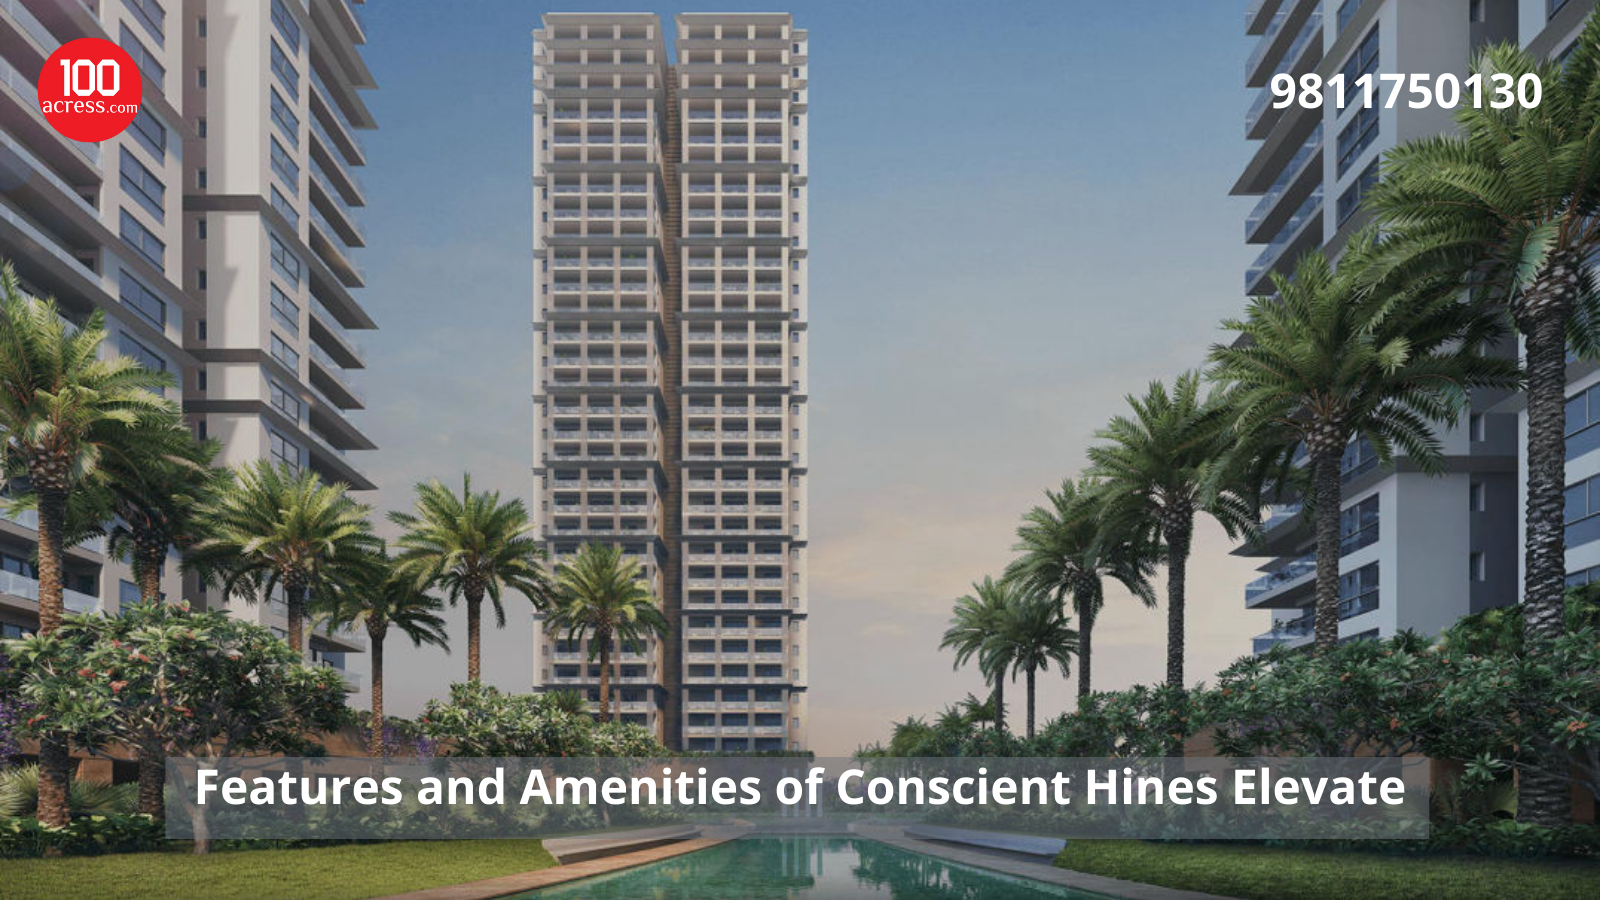 Features and Amenities of Conscient Hines Elevate